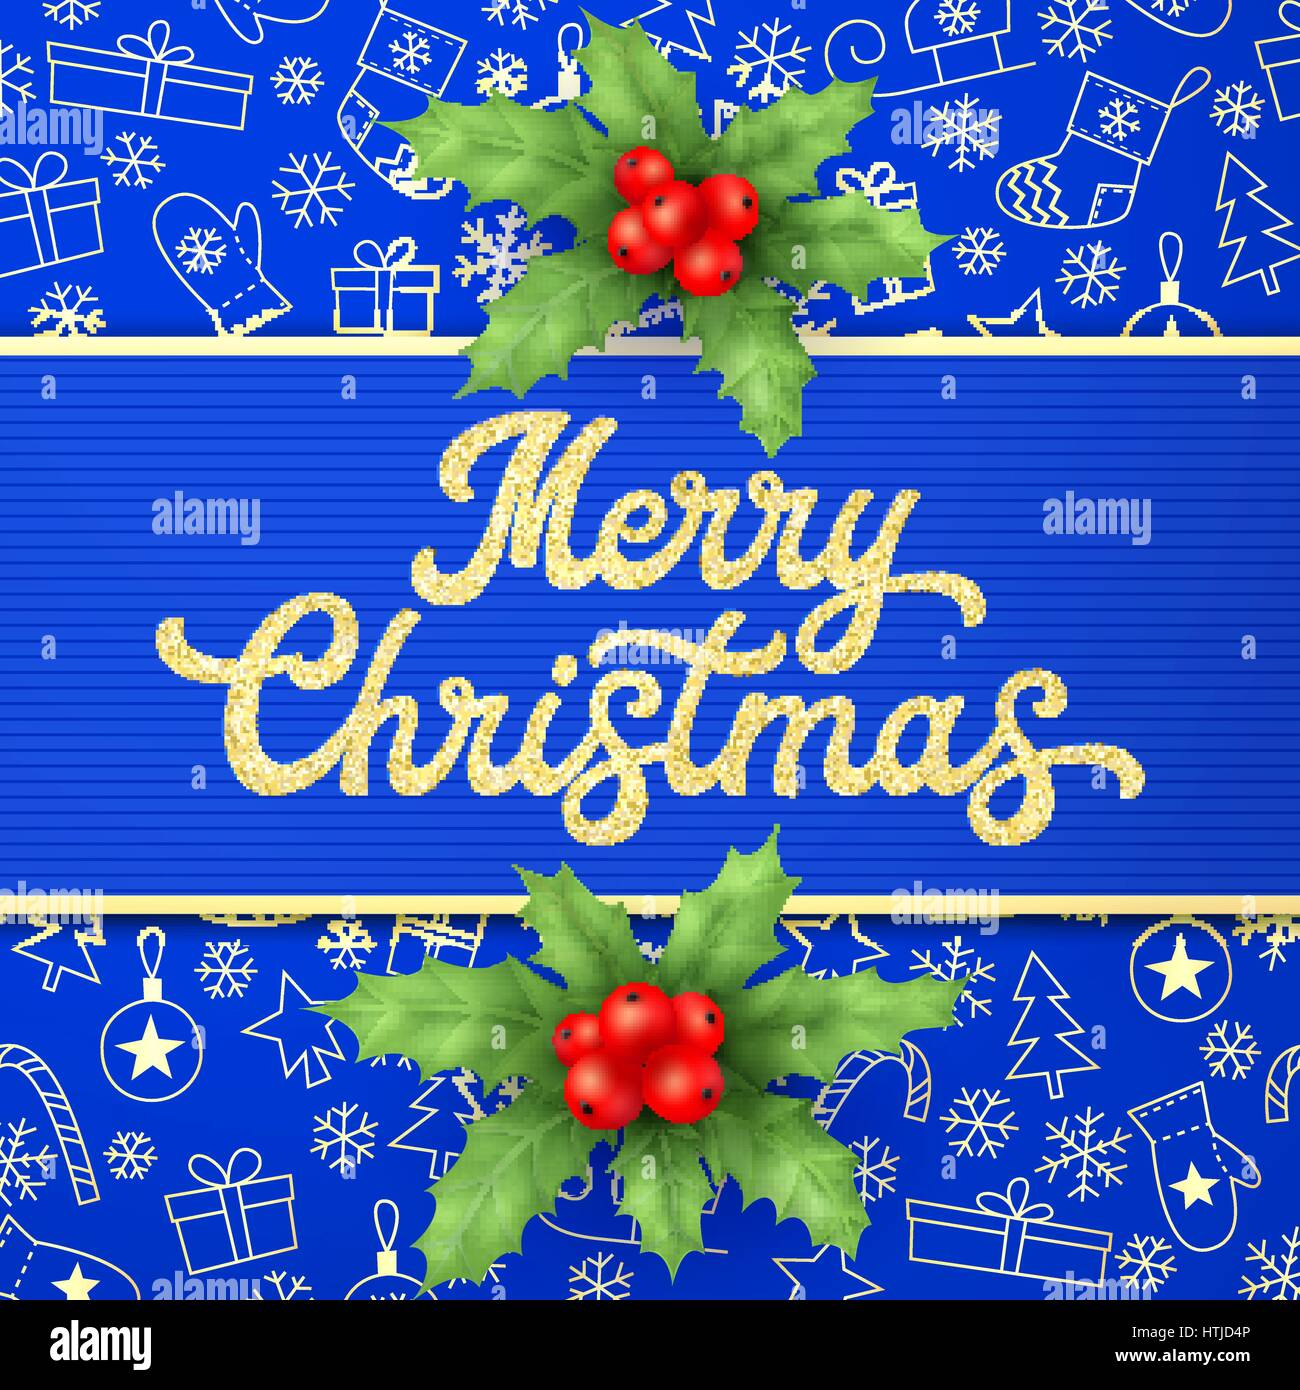 Christmas card with holly branches and glitter gold lettering on blue Xmas background. Colorful vector illustration. - Stock Image